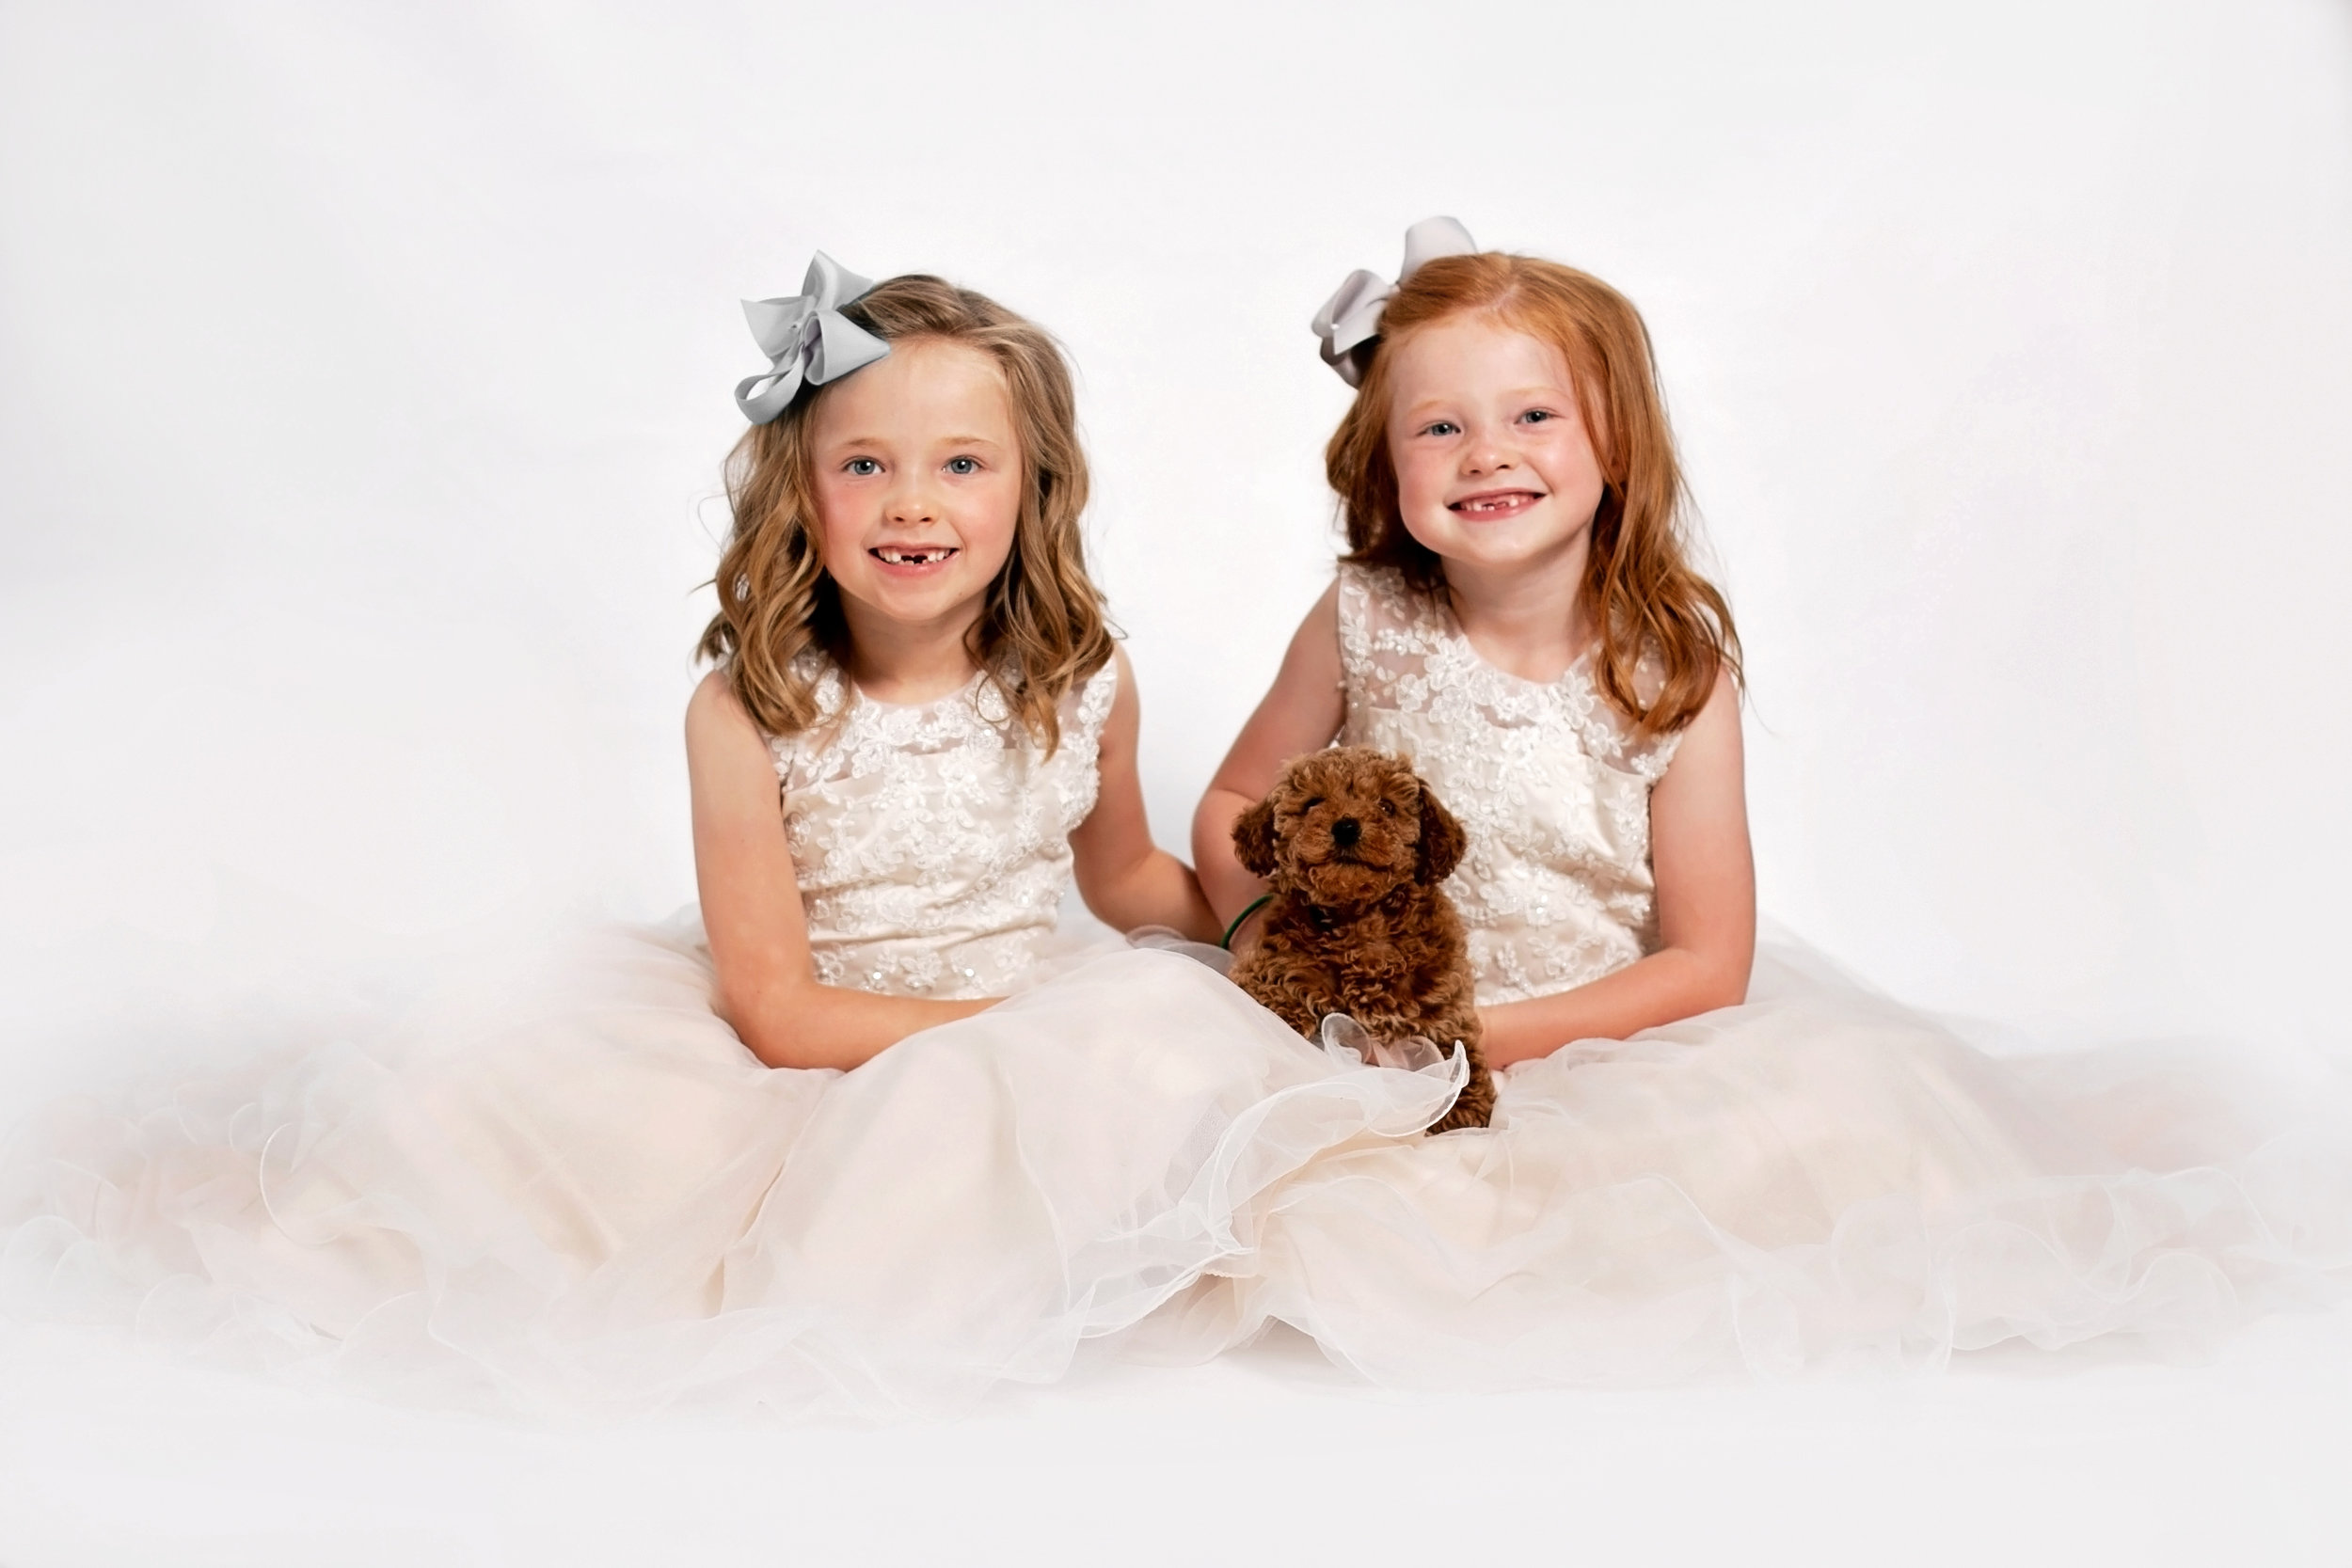 Yearly Birthday photos done by Cincinnati Family Photographer Jess Summers of Say Yes To Jess